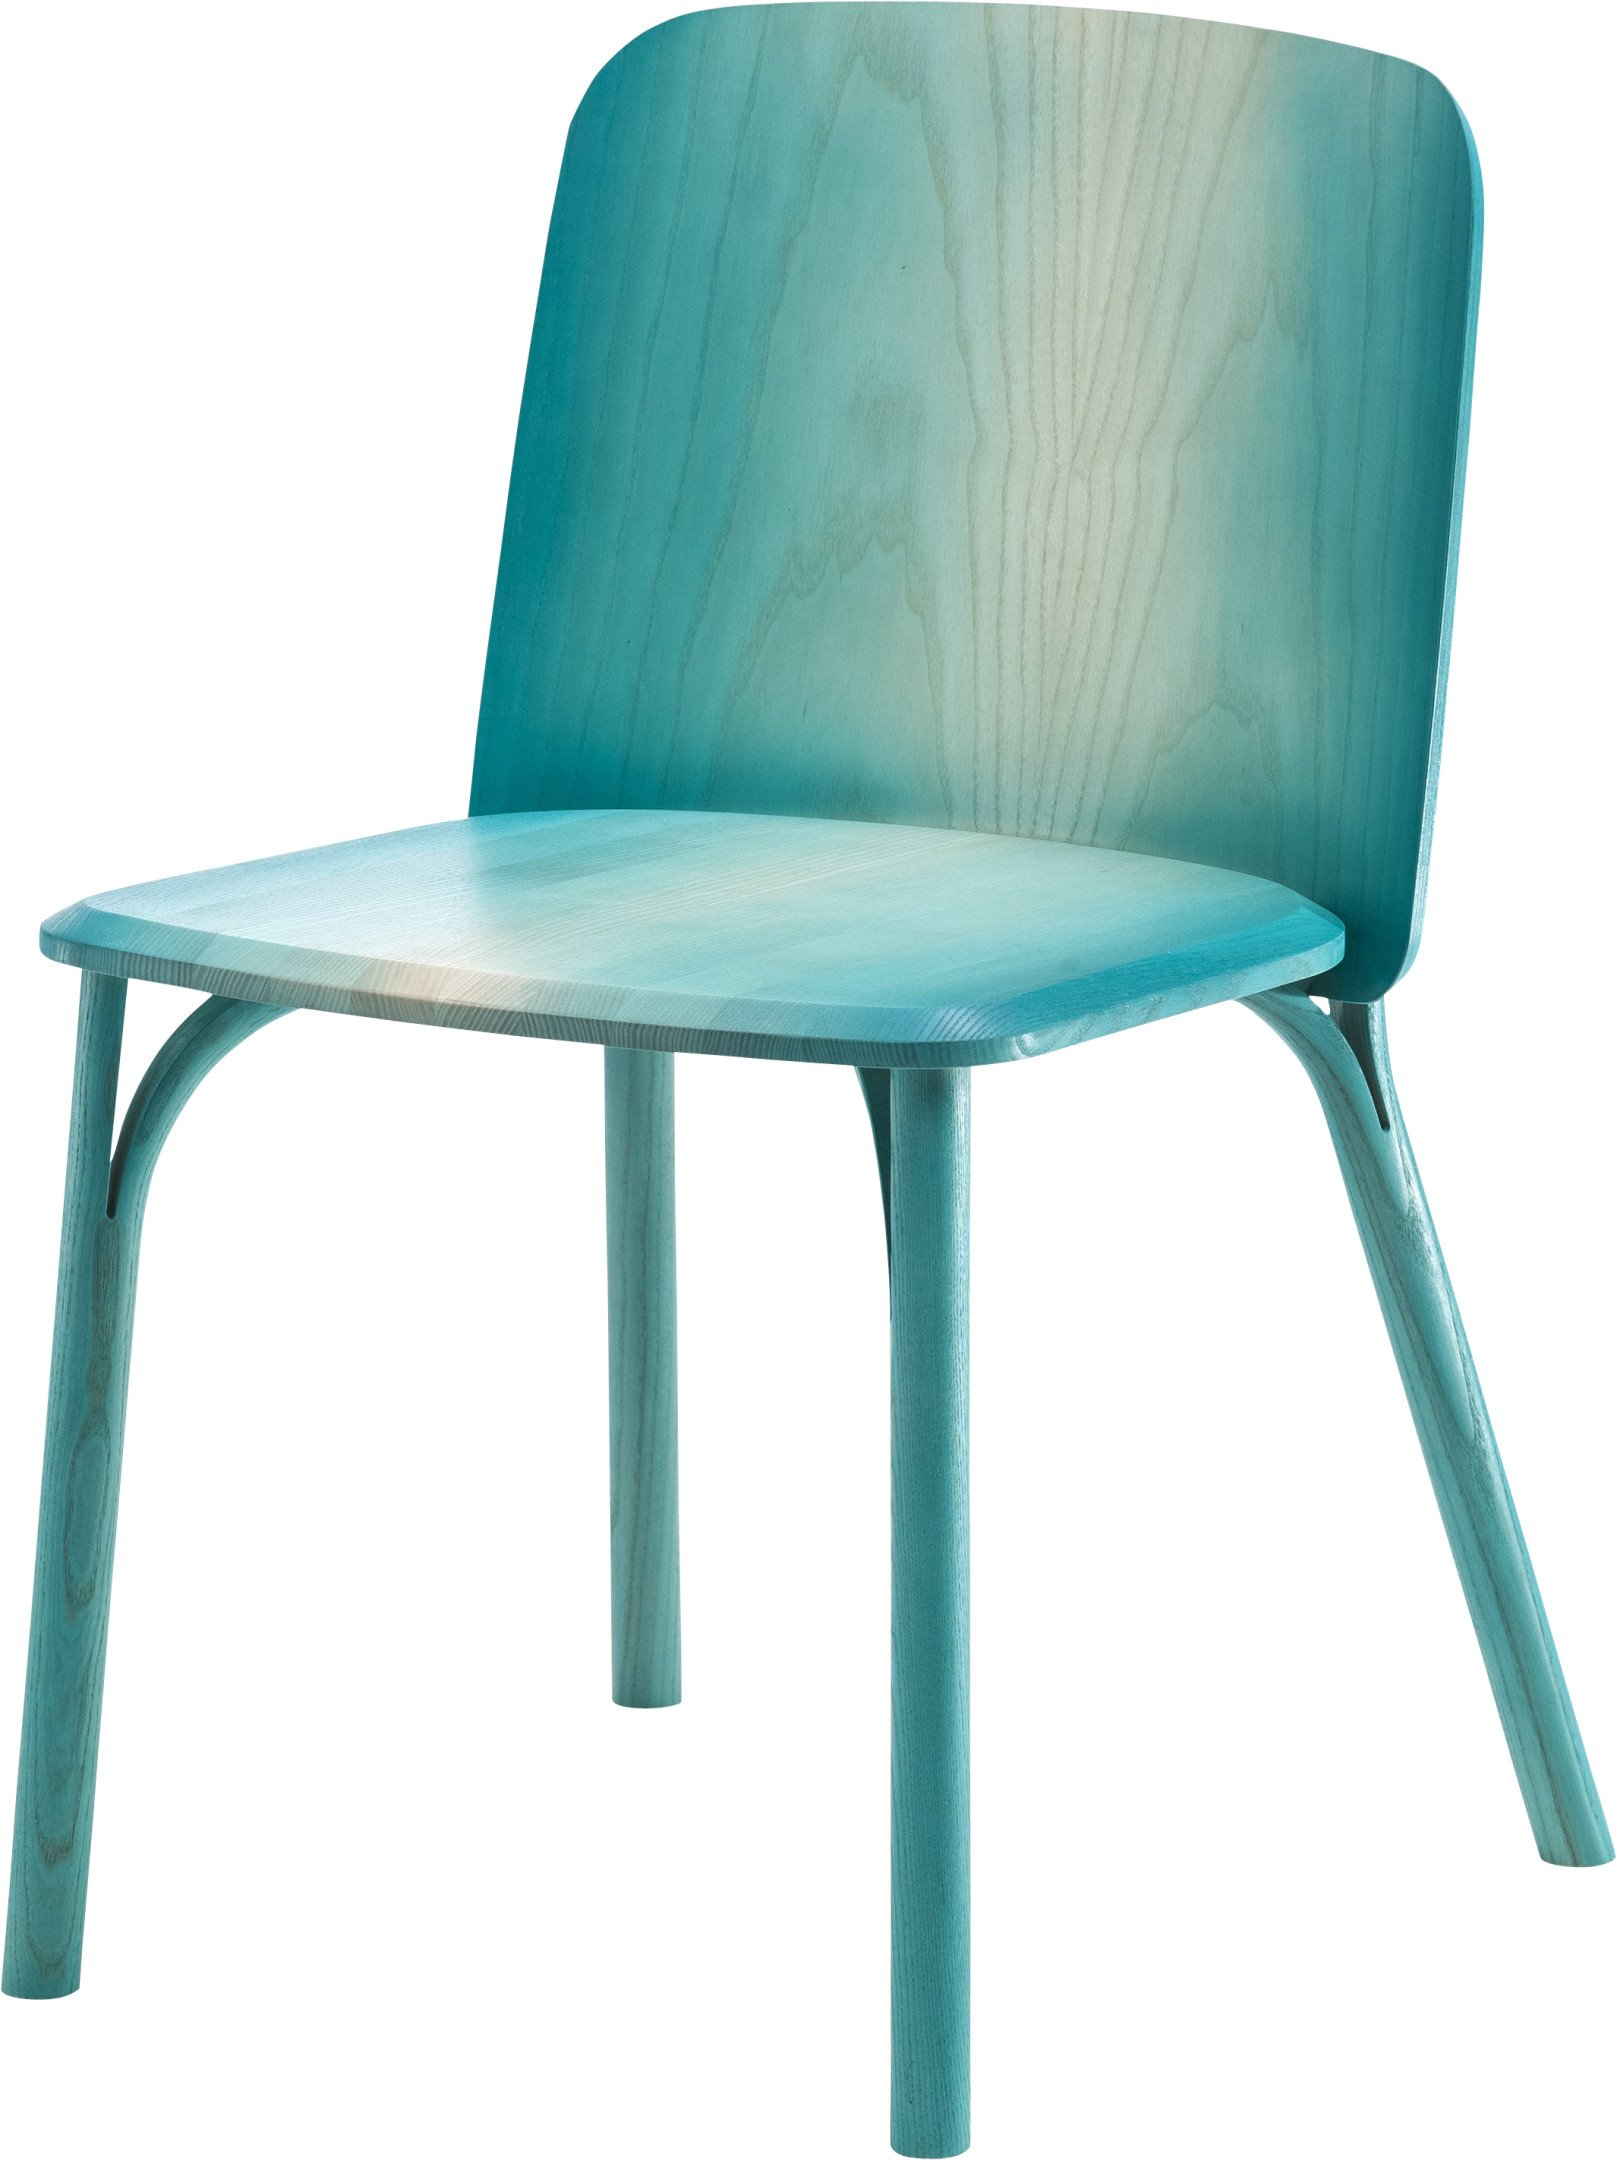 Split Chair Ashwood by A. Levy, TON